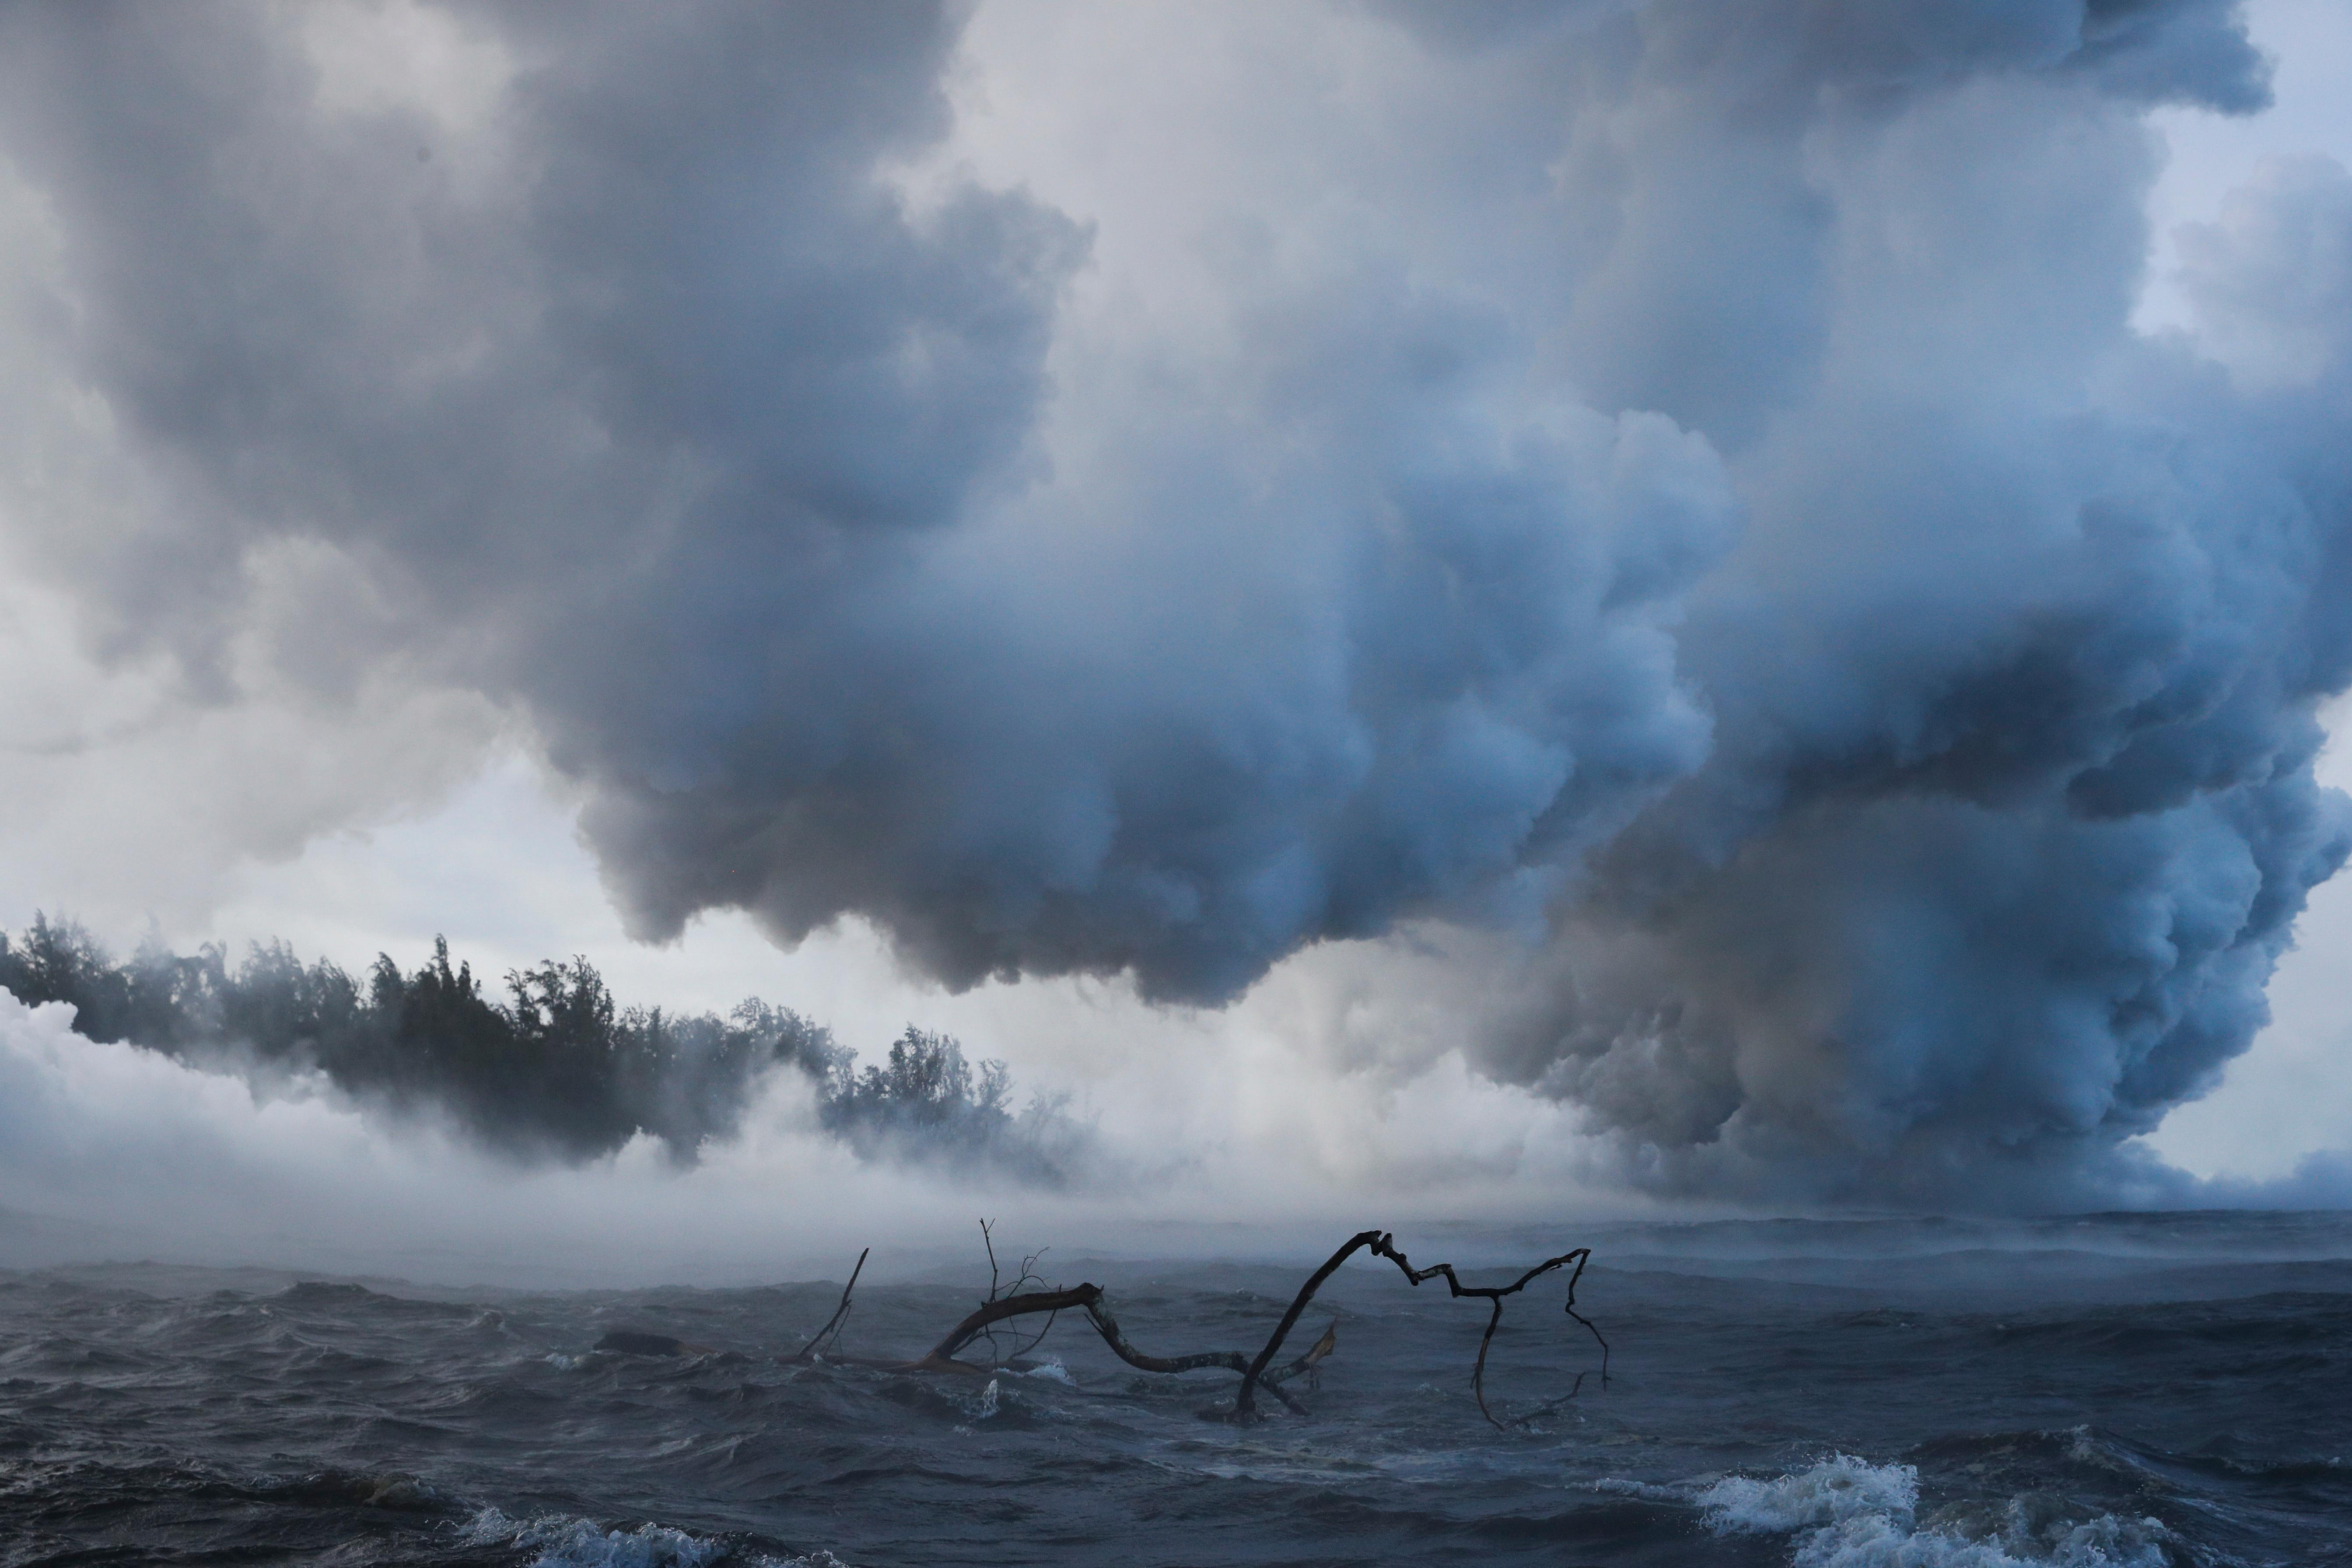 Plumes of steam rise as lava enters the ocean near Pahoa, Hawaii Sunday, May 20, 2018. Kilauea volcano that is oozing, spewing and exploding on Hawaii's Big Island has gotten more hazardous in recent days, with rivers of molten rock pouring into the ocean Sunday and flying lava causing the first major injury. (AP Photo/Jae C. Hong)